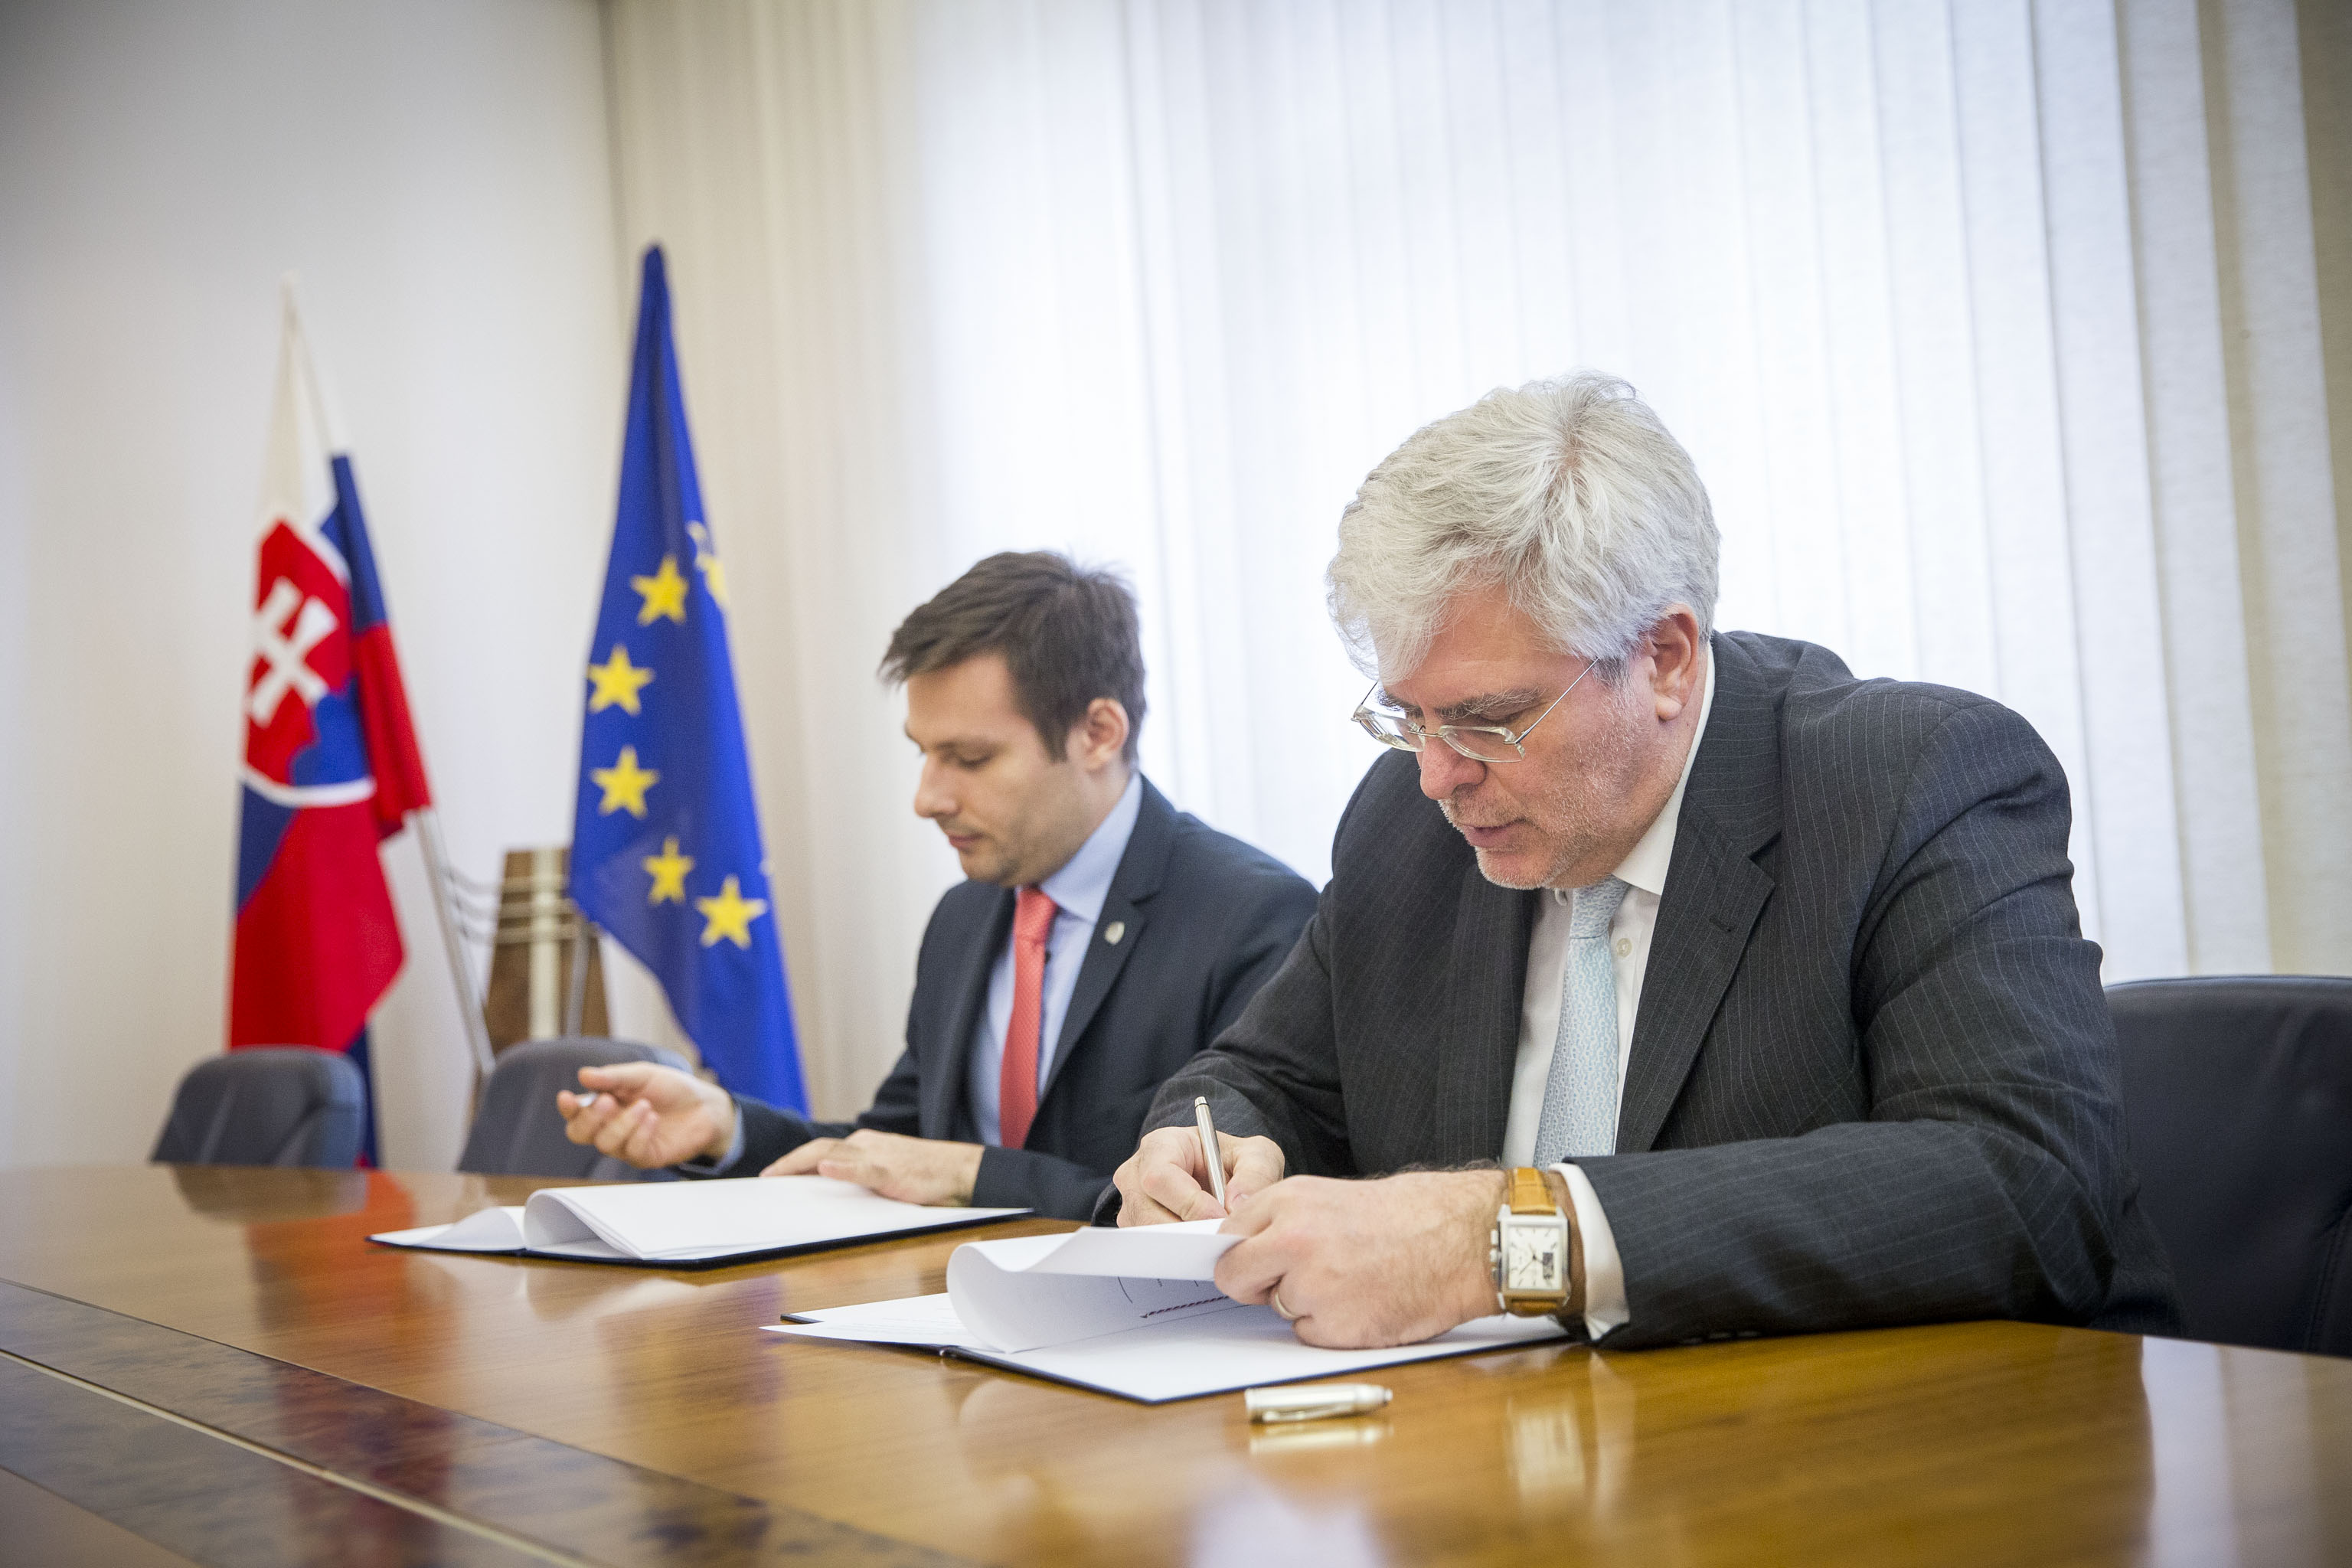 State Secretary of the Slovak Foreign and European Affairs Ministry Igor Slobodník and Managing Director of the Slovak Atlantic Commission Milan Solár signed an agreement on cooperation in preparing the GLOBSEC 2016 strategic security forum.